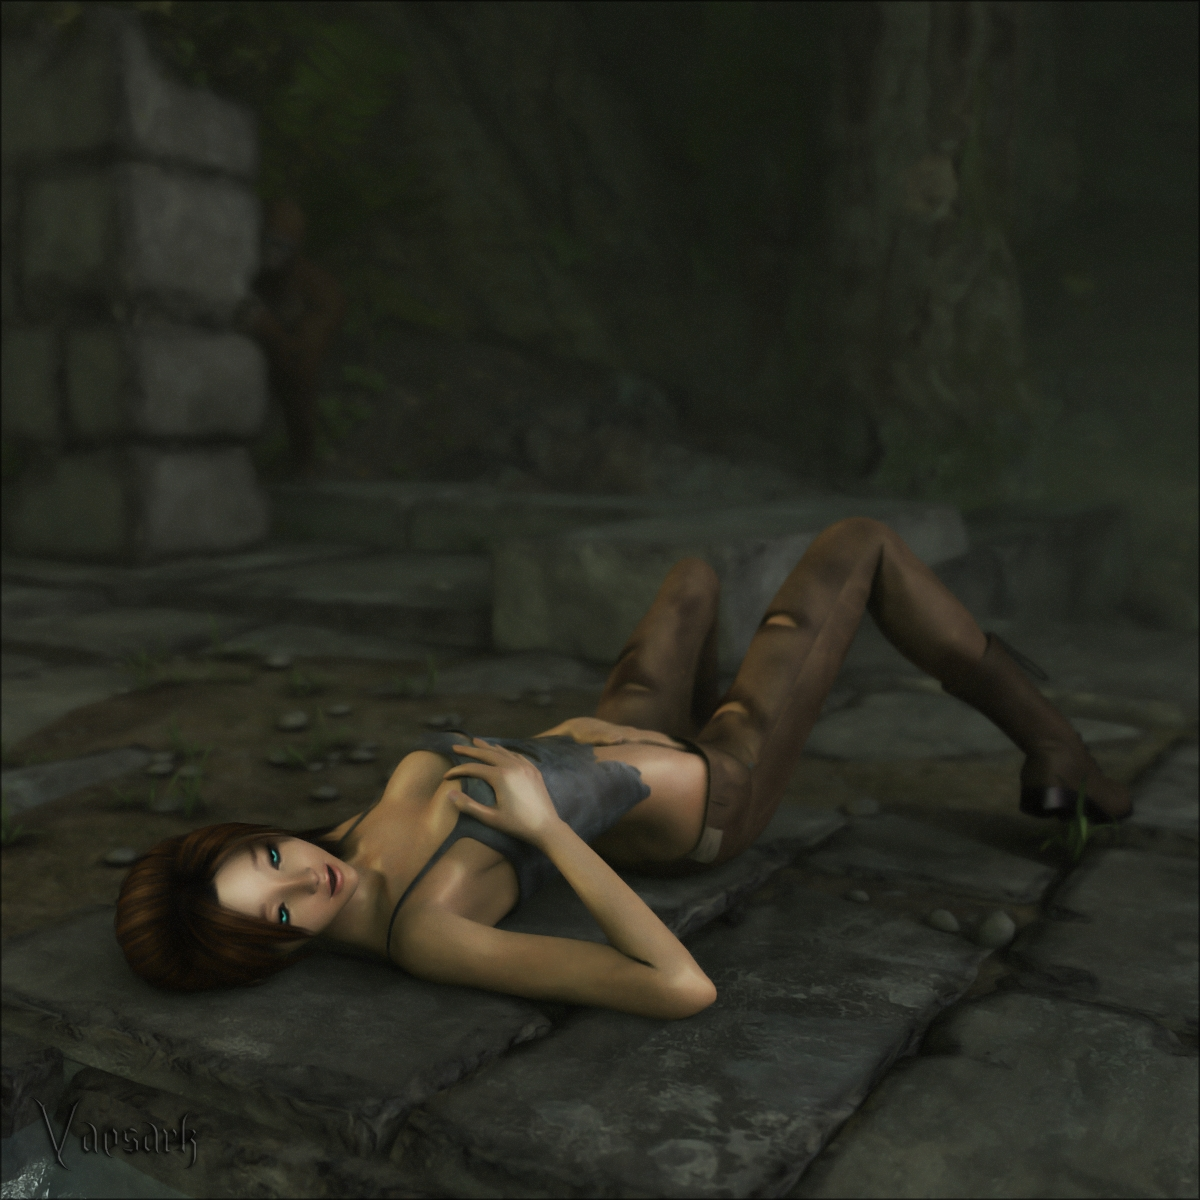 e621 lara croft